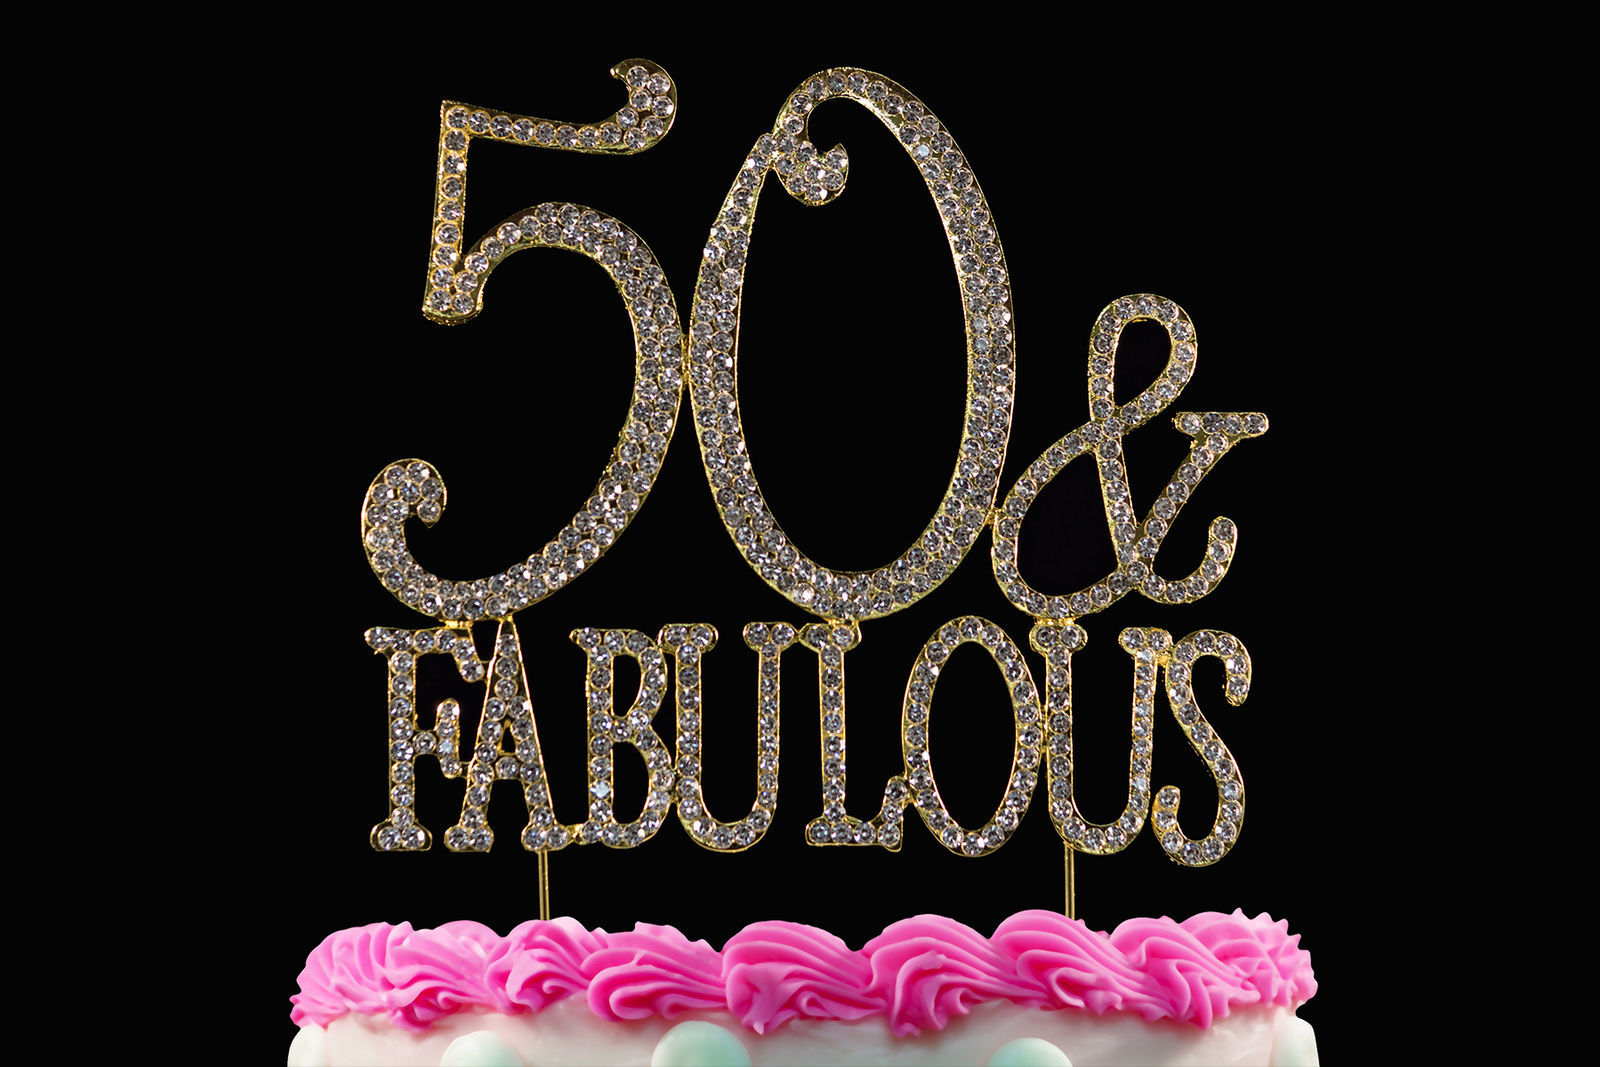 50 and Fabulous 50th Birthday Cake Toppers Bling Cake Topper Gold Cake Tops